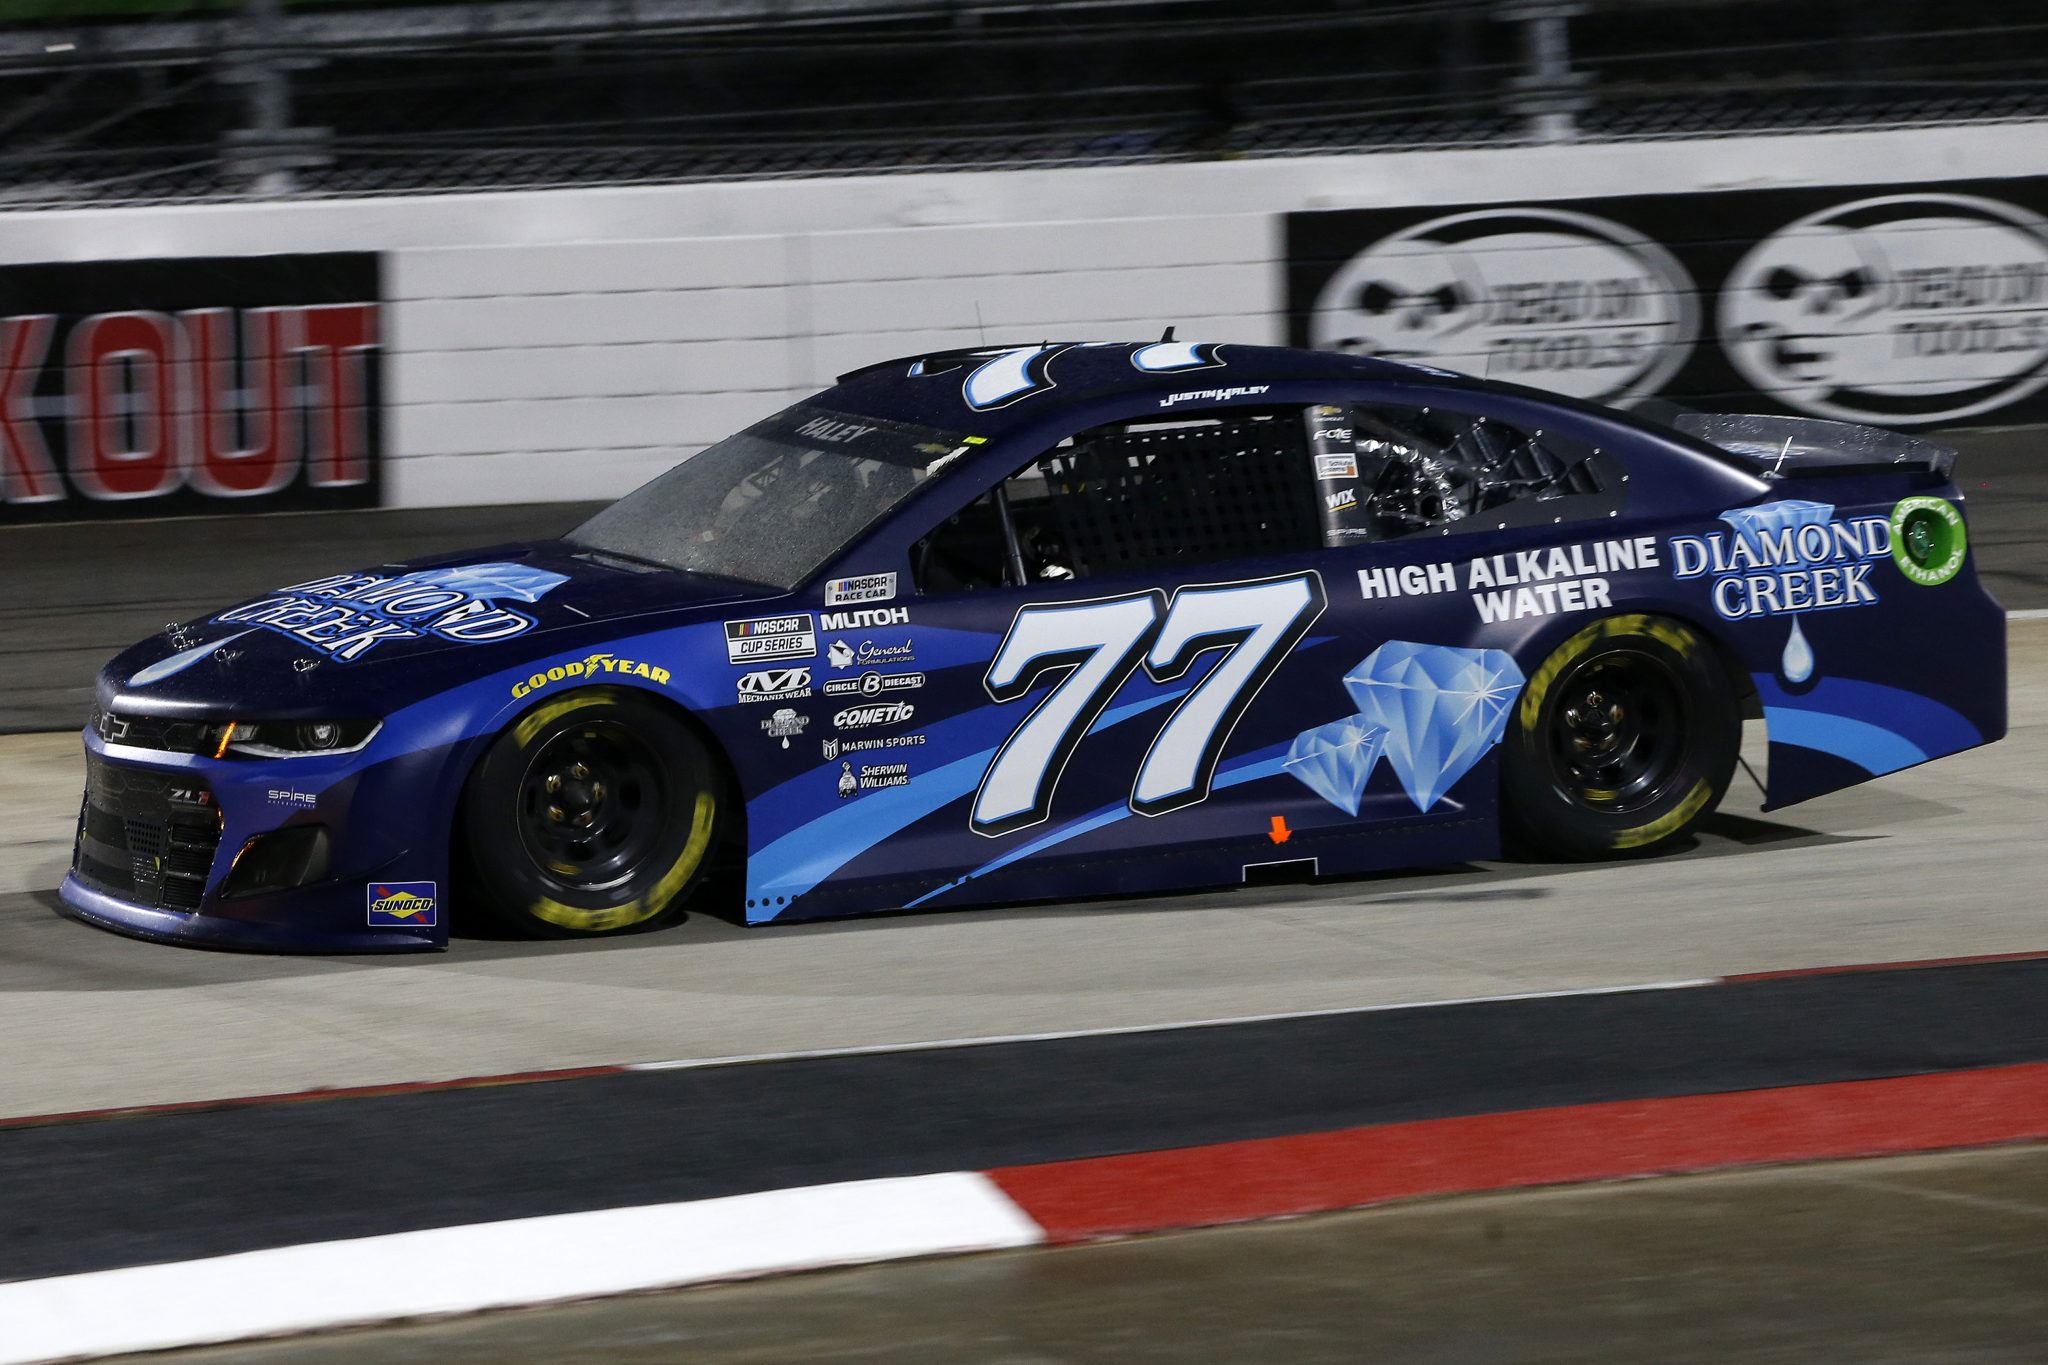 MARTINSVILLE, VIRGINIA - APRIL 10: Justin Haley, driver of the #77 Diamond Creek Water Chevrolet, drives during the NASCAR Cup Series Blue-Emu Maximum Pain Relief 500 at Martinsville Speedway on April 10, 2021 in Martinsville, Virginia. (Photo by Brian Lawdermilk/Getty Images) | Getty Images